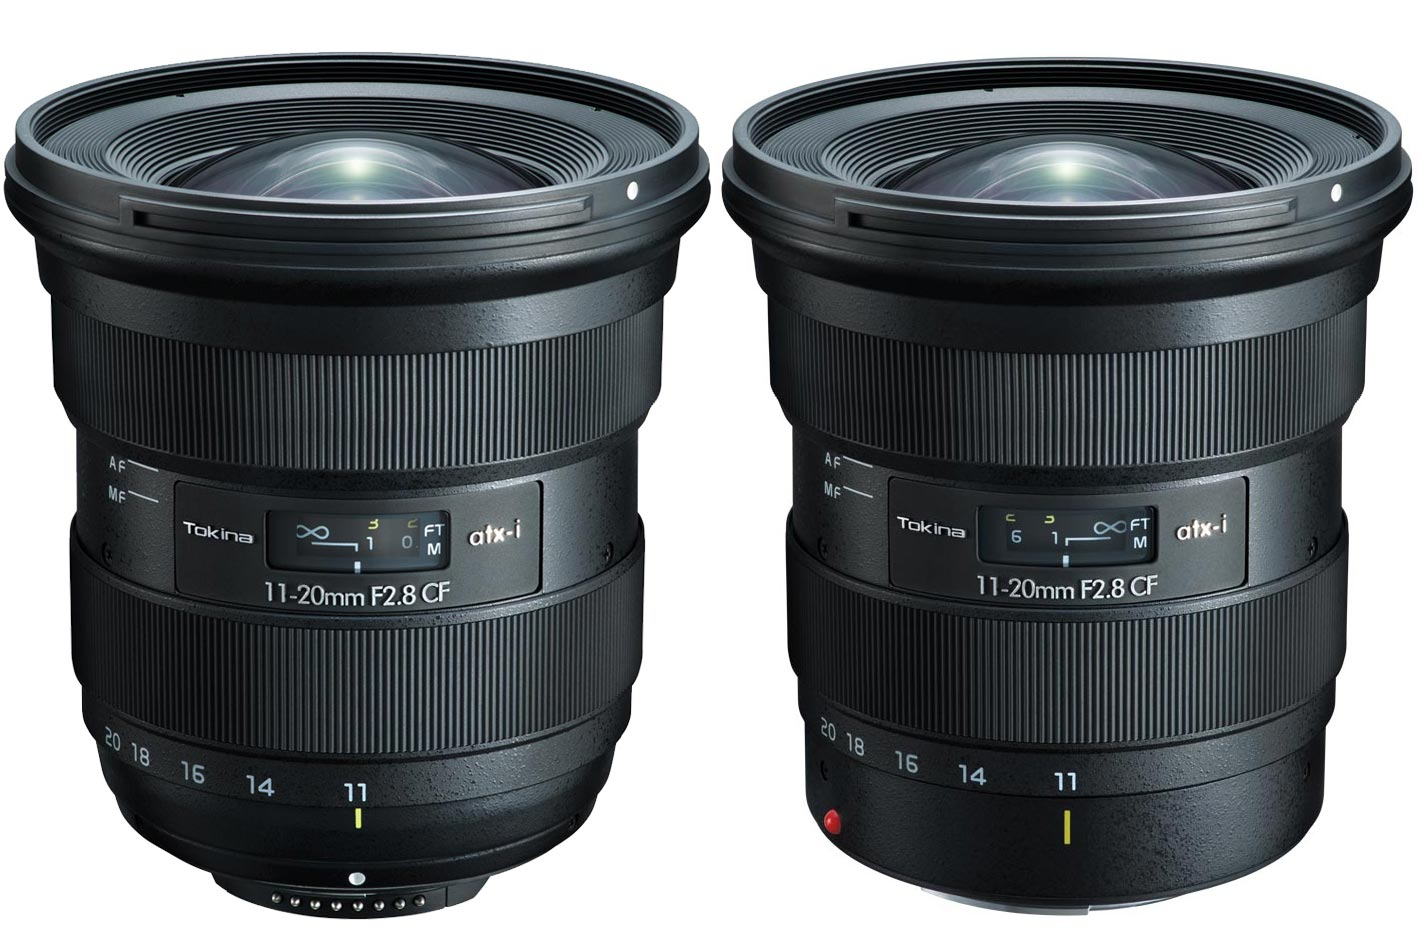 Tokina atx-i 11-20mm F2.8 CF: an ultra wide angle lens for DSLRs